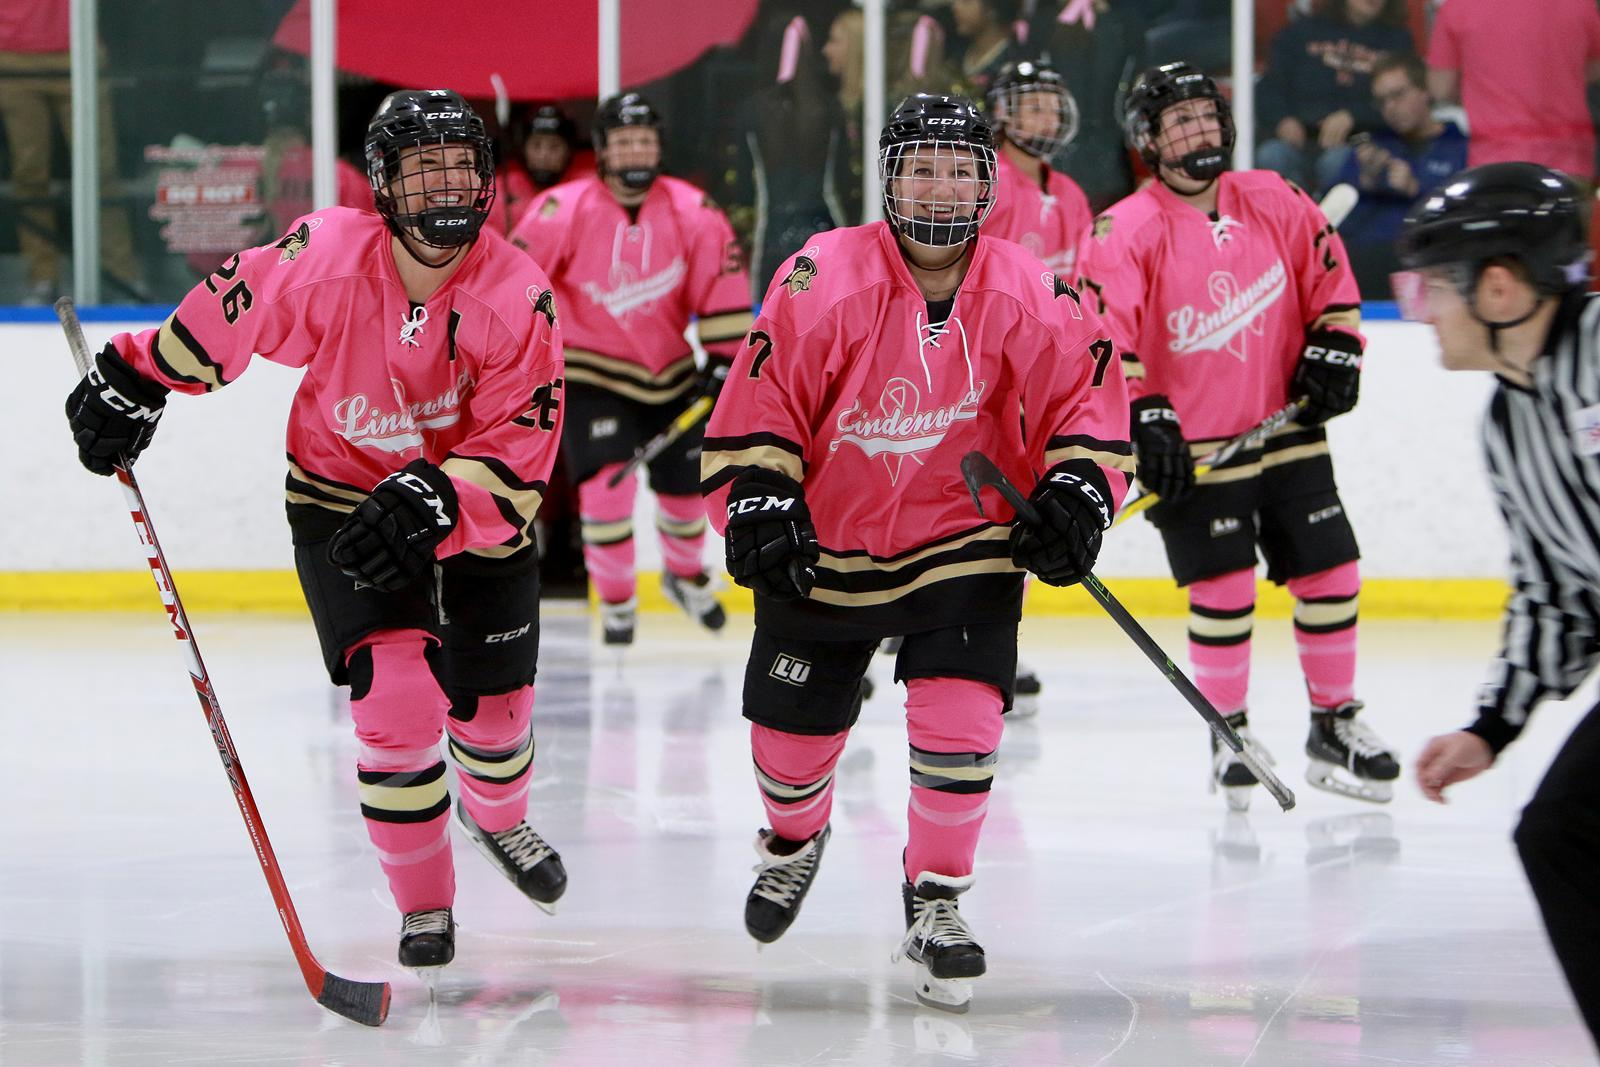 Cha Tournament Begins Thursday In Buffalo N Y For Women S Hockey